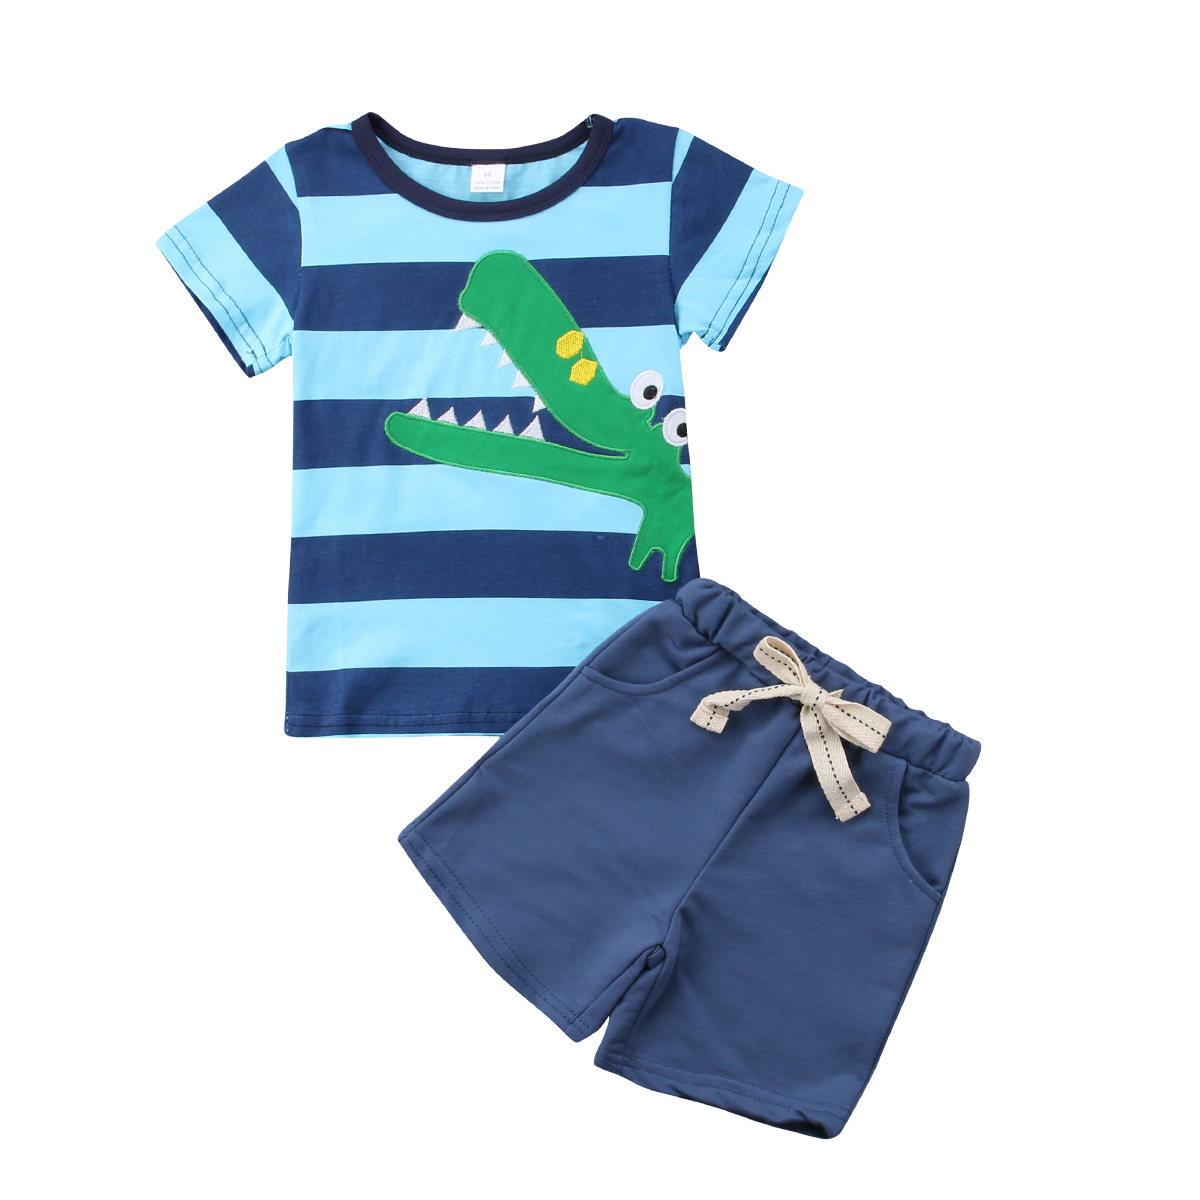 Mother & Kids Motivated 2-7y Boys Beach Sunsuit Clothes Set Stripe Cartoon T Shirt Tops Short Pants 2pcs Summer Kids Outfits Boys' Clothing